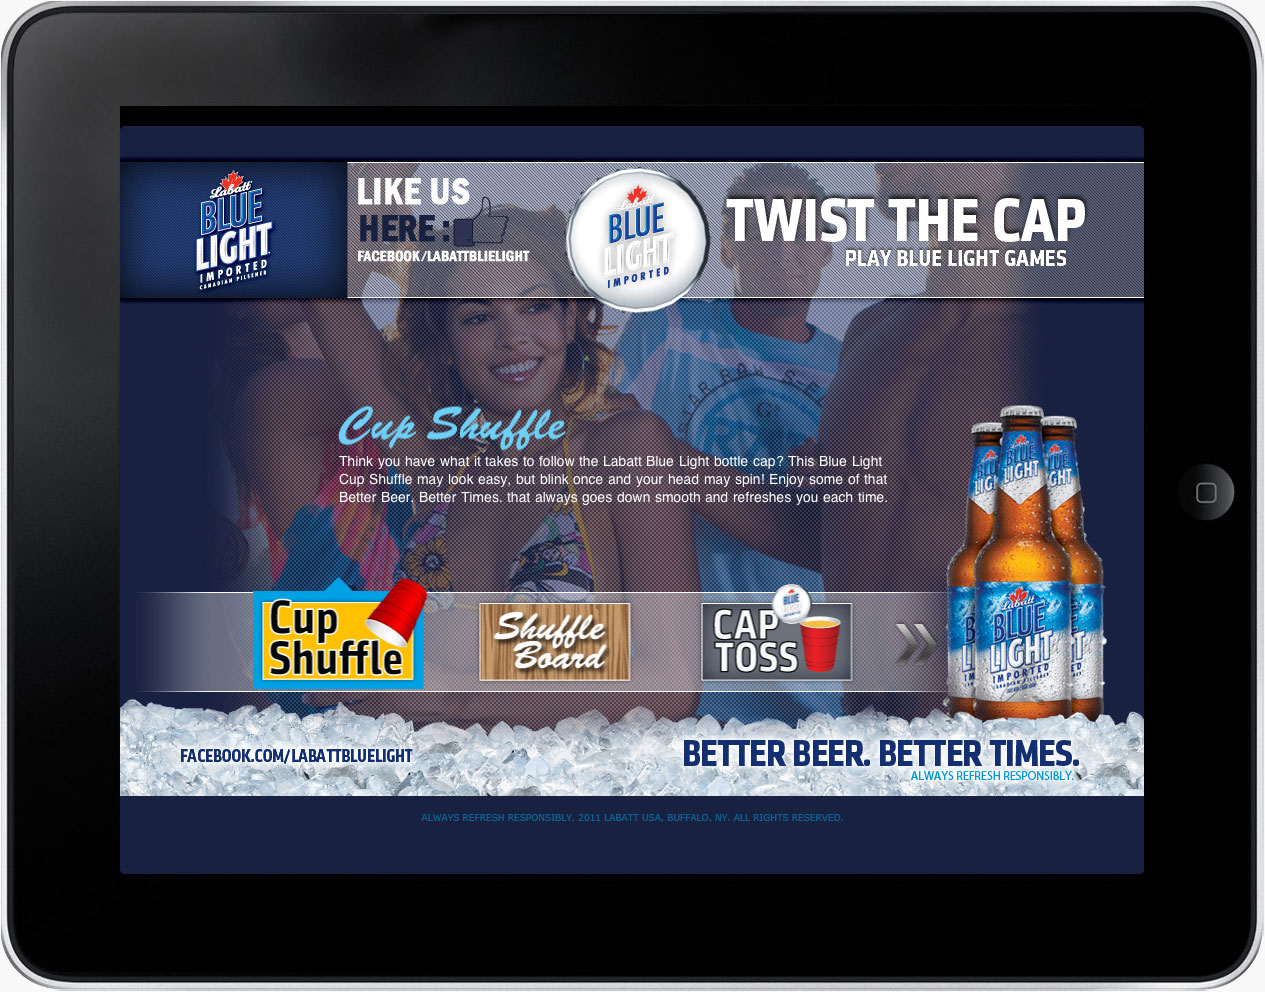 Mobile app for Labatt Blue